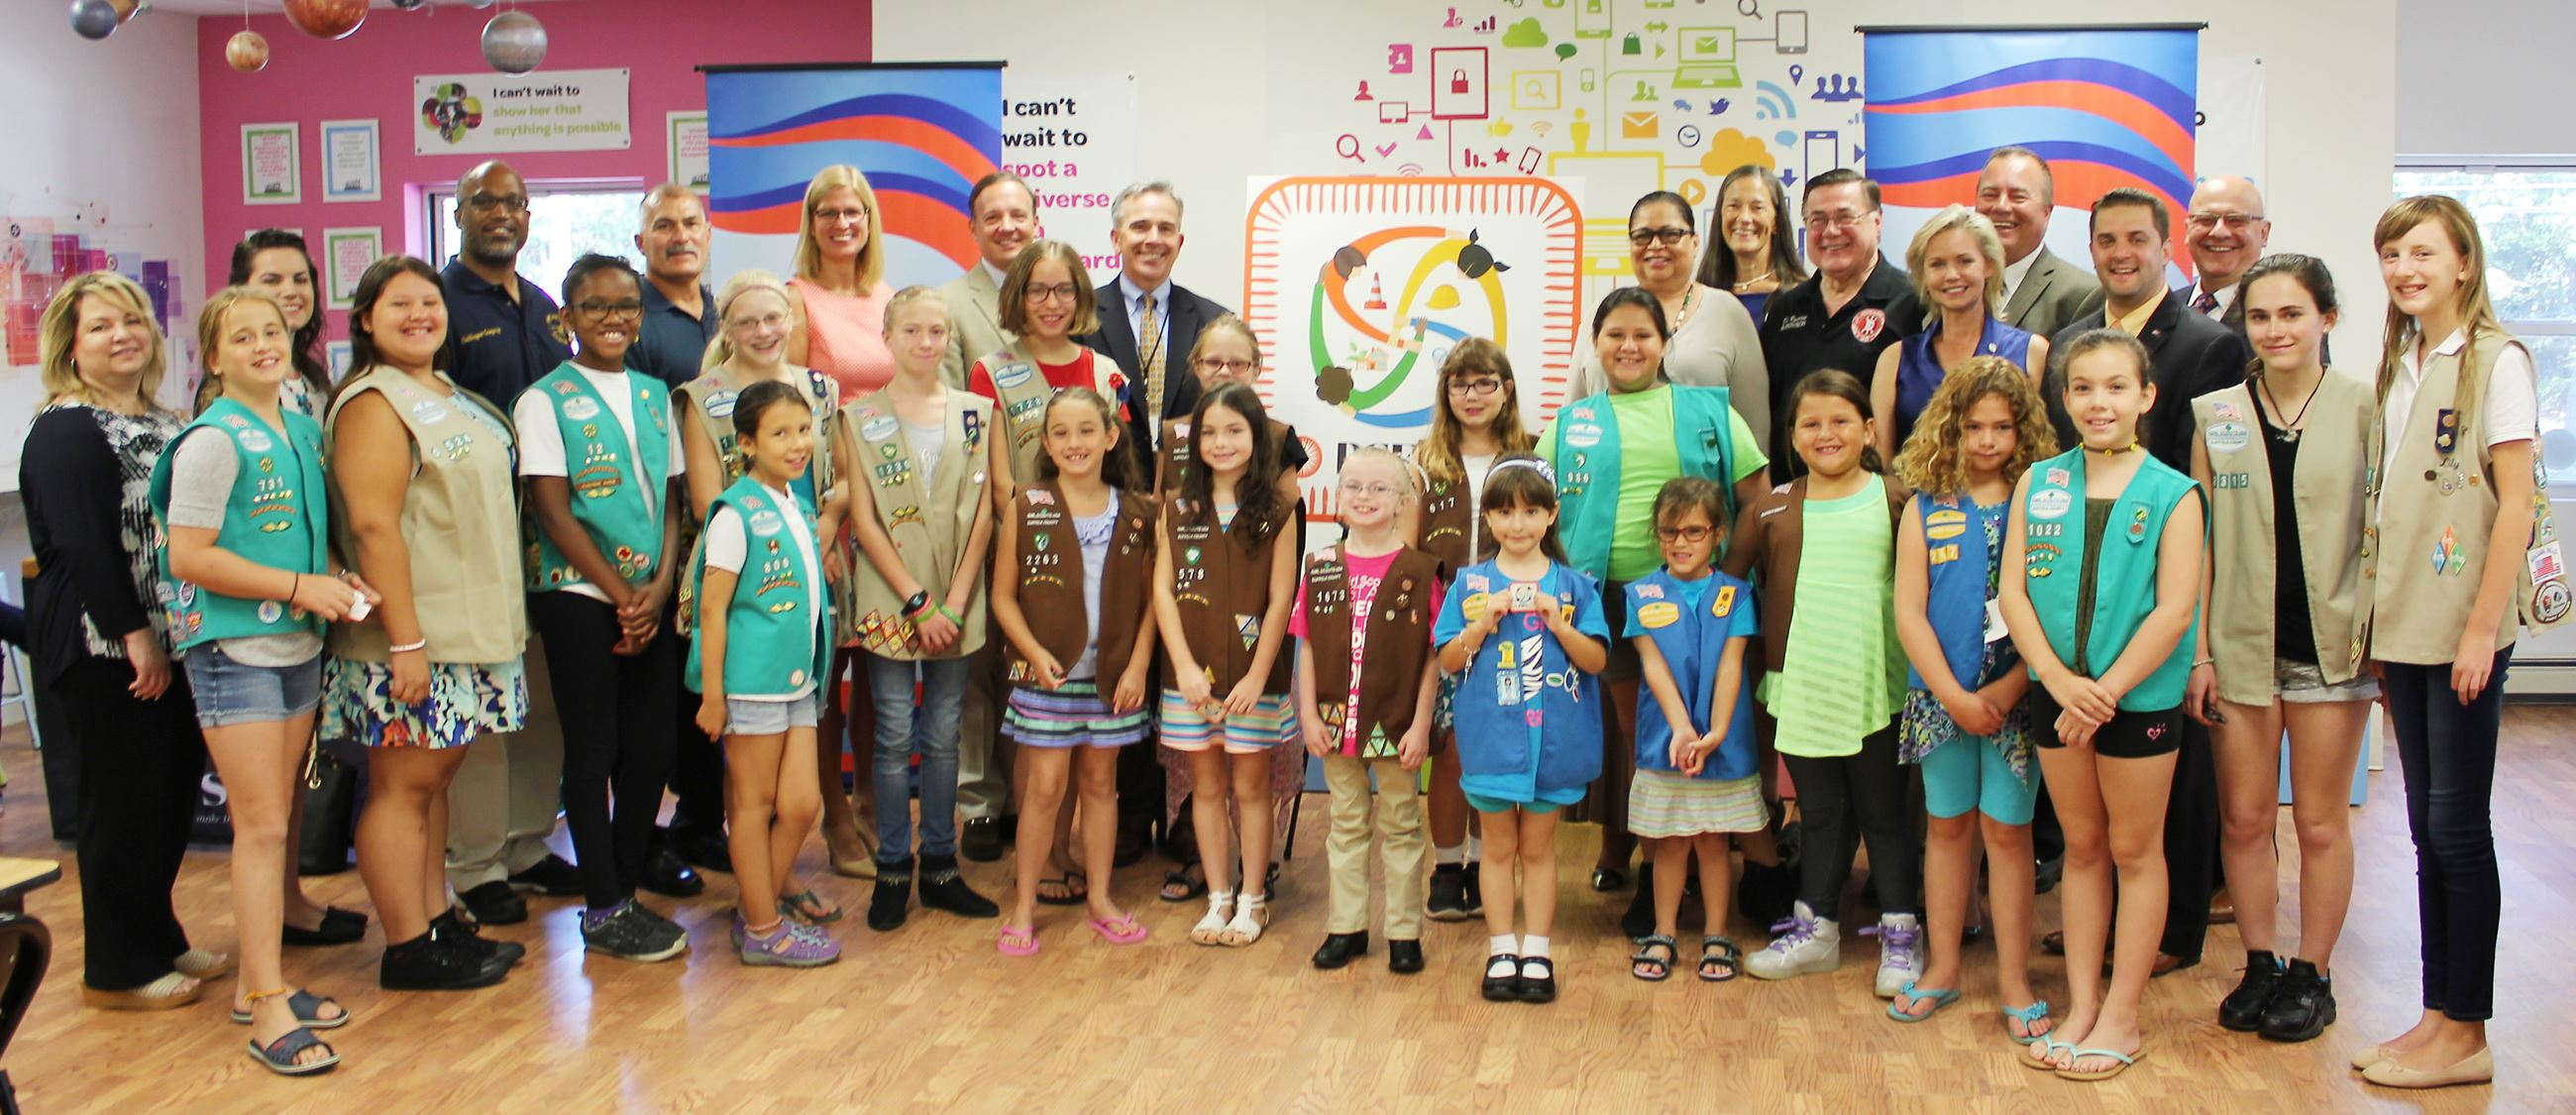 Large group of girl scouts attend event for new patch program.